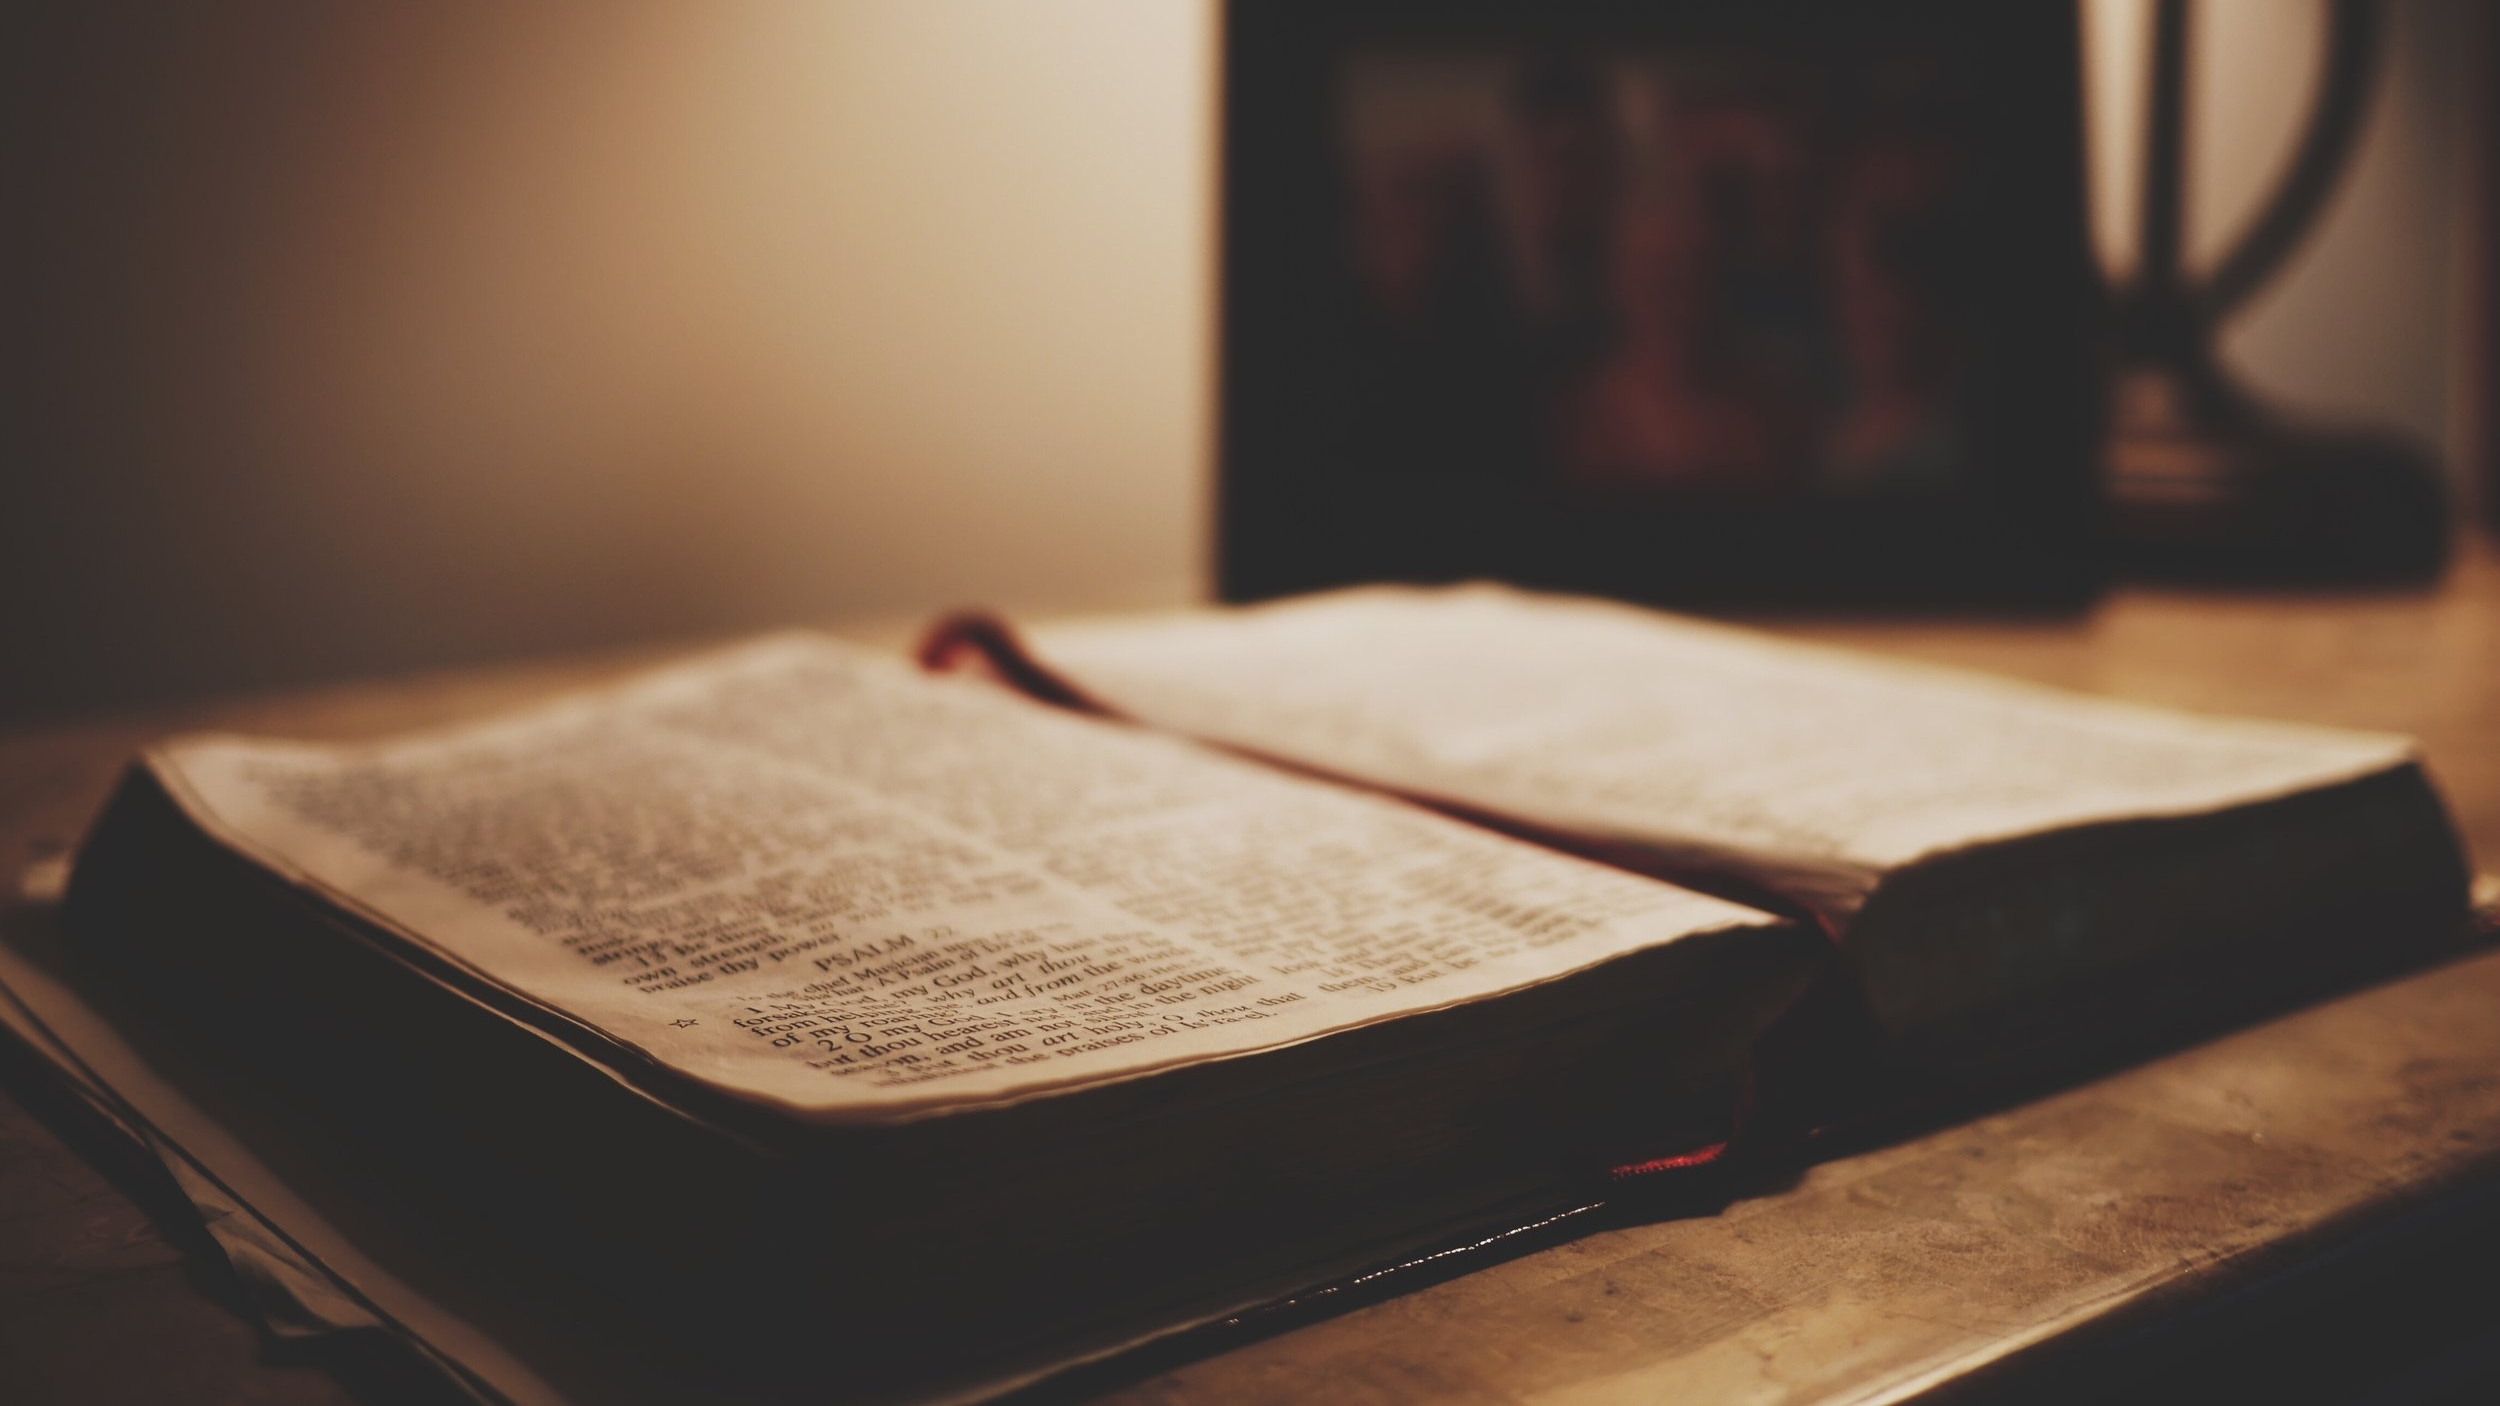 Read the Bible -